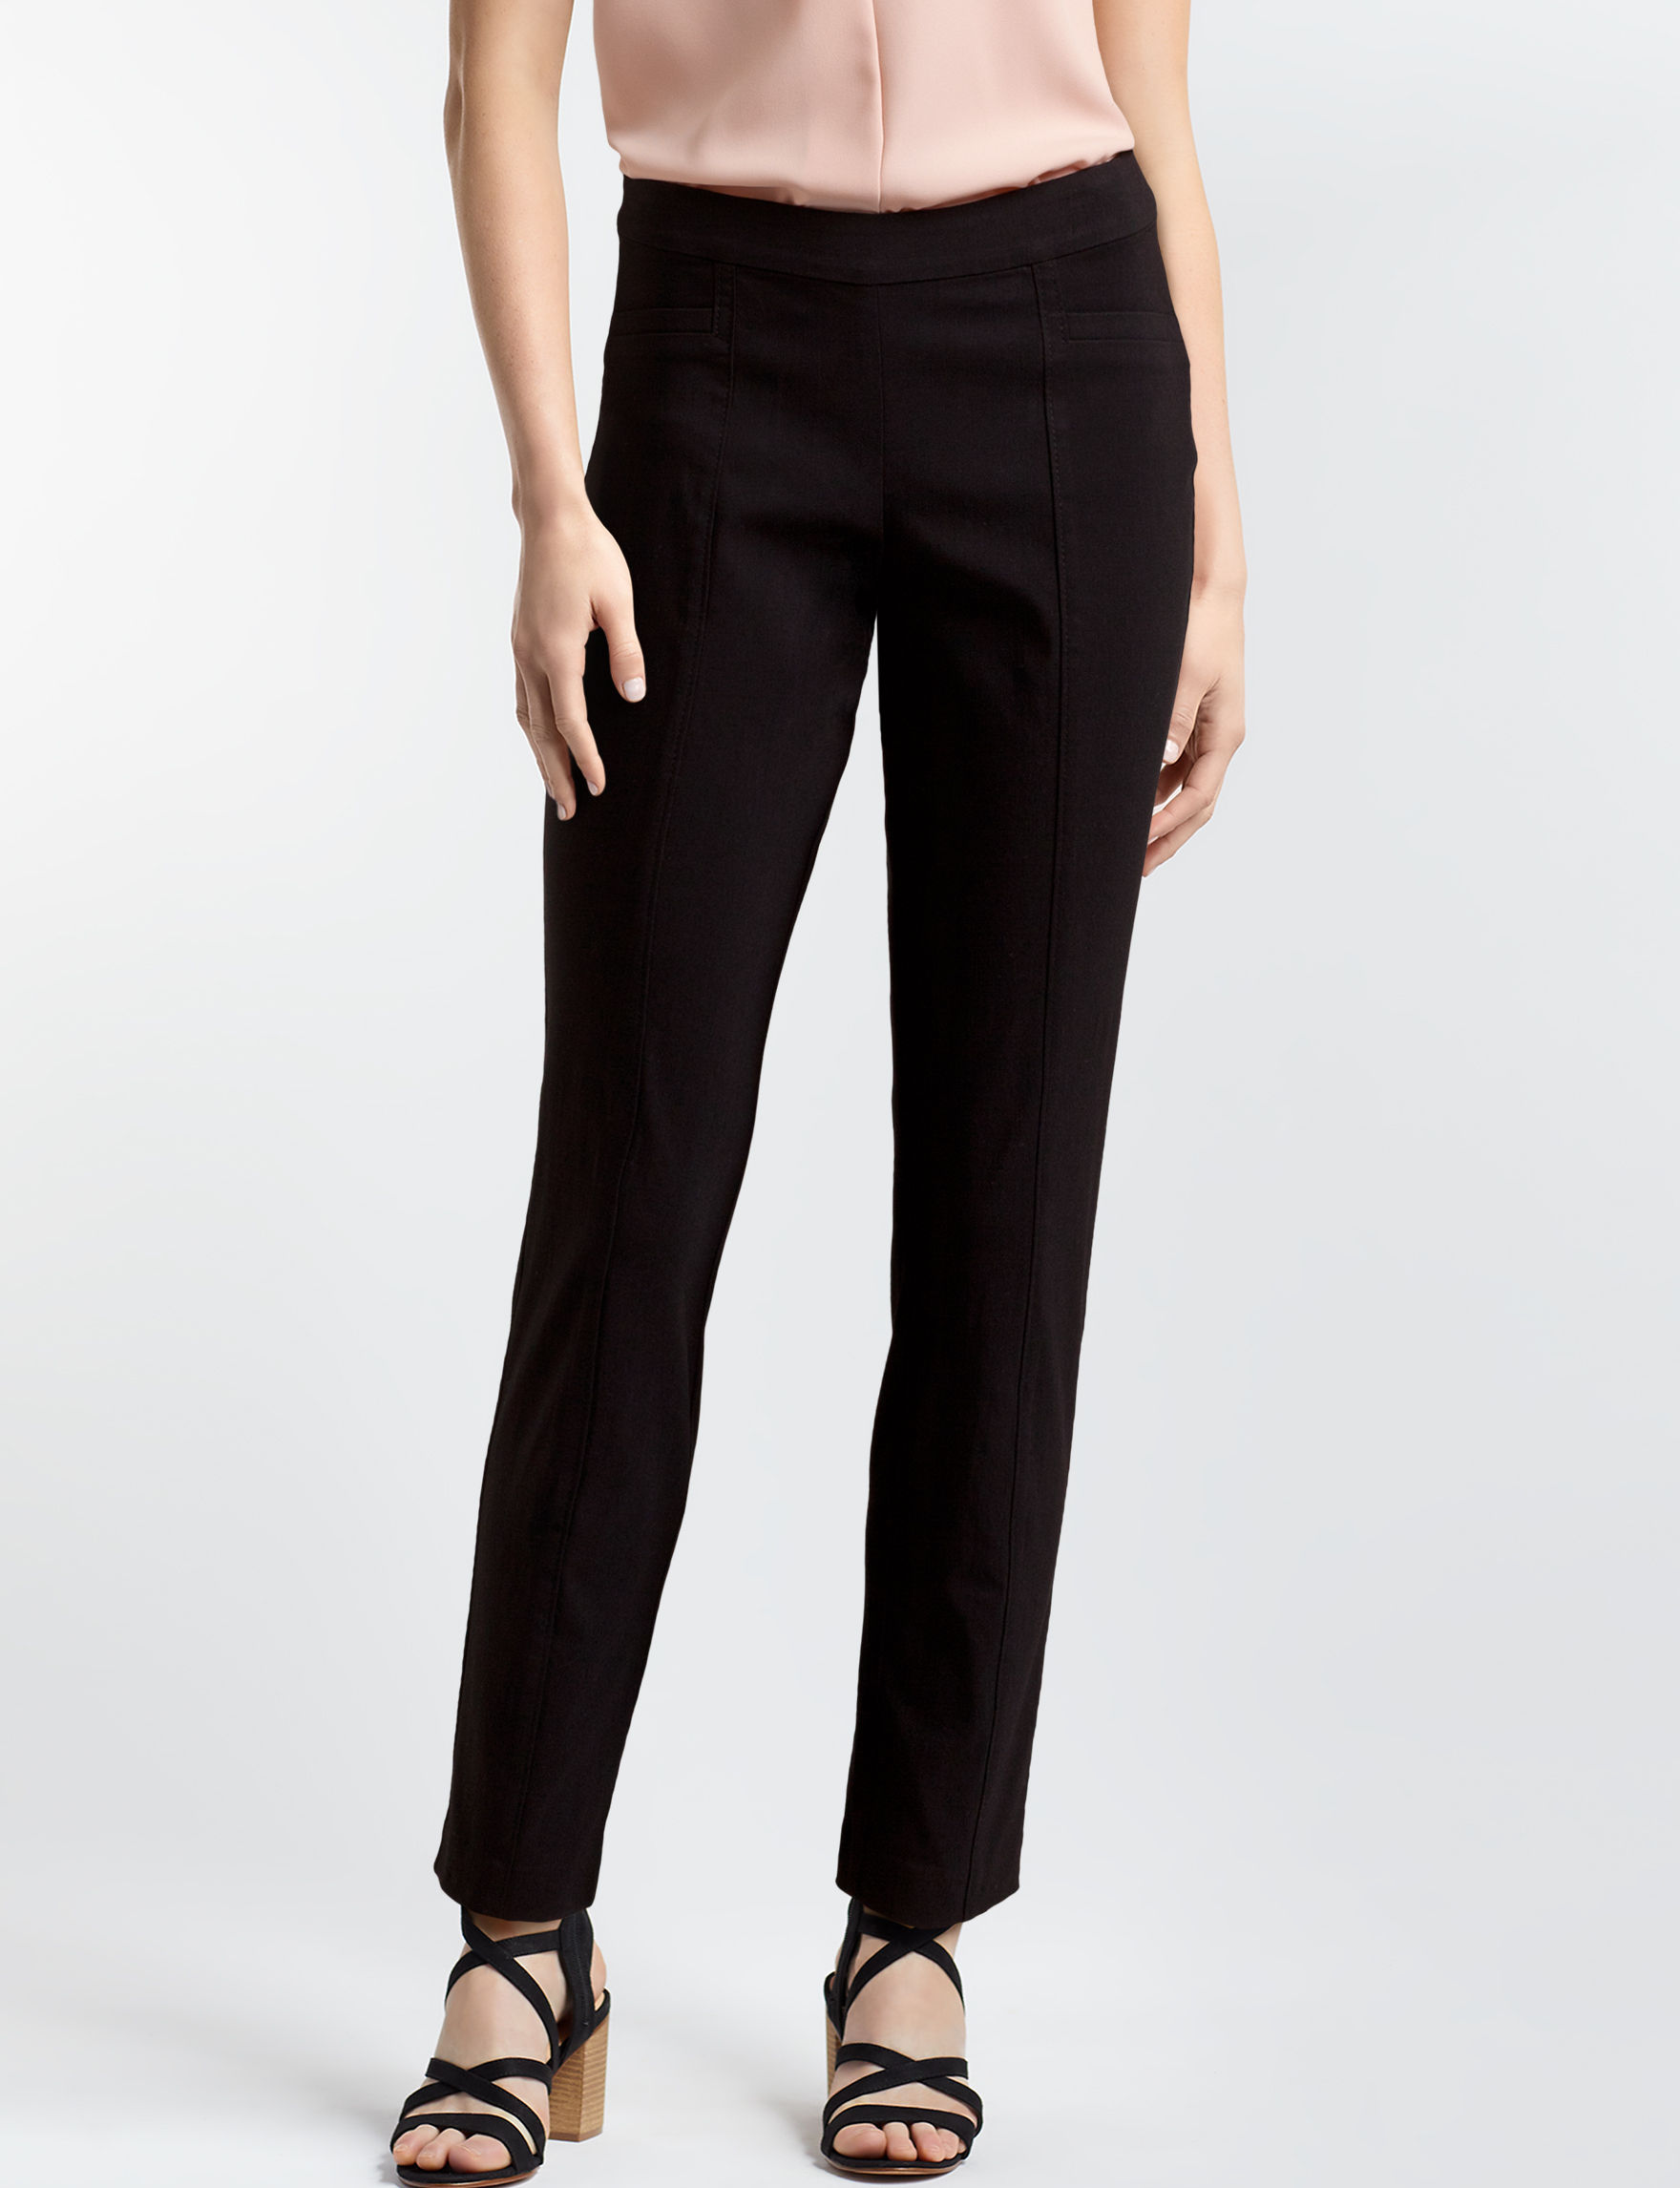 Leighton Black Skinny Stretch